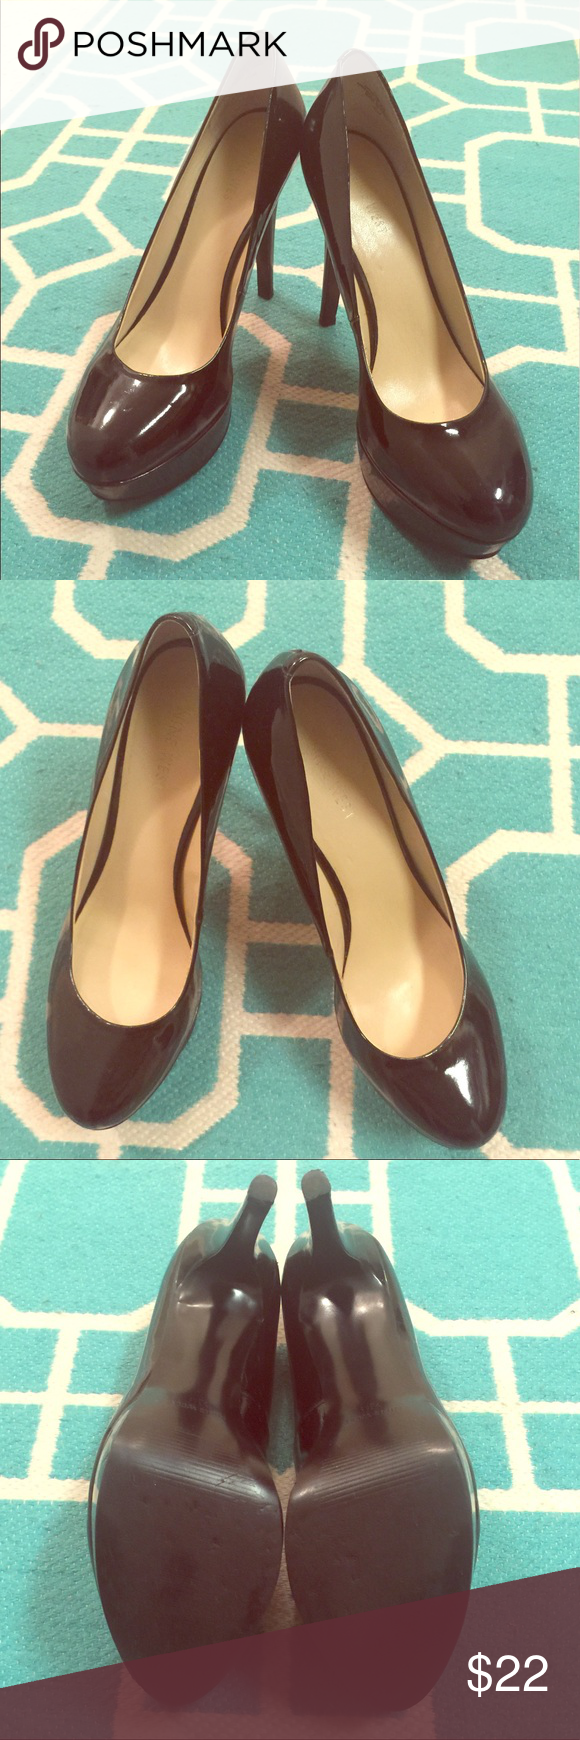 "✨HP✨ Cute Nine West Black Heels EUC shinny black heels. A few small scuffs, see pictures. Heels measures approx. 4.5"". No box. Bundle for a discount! Nine West Shoes Heels"